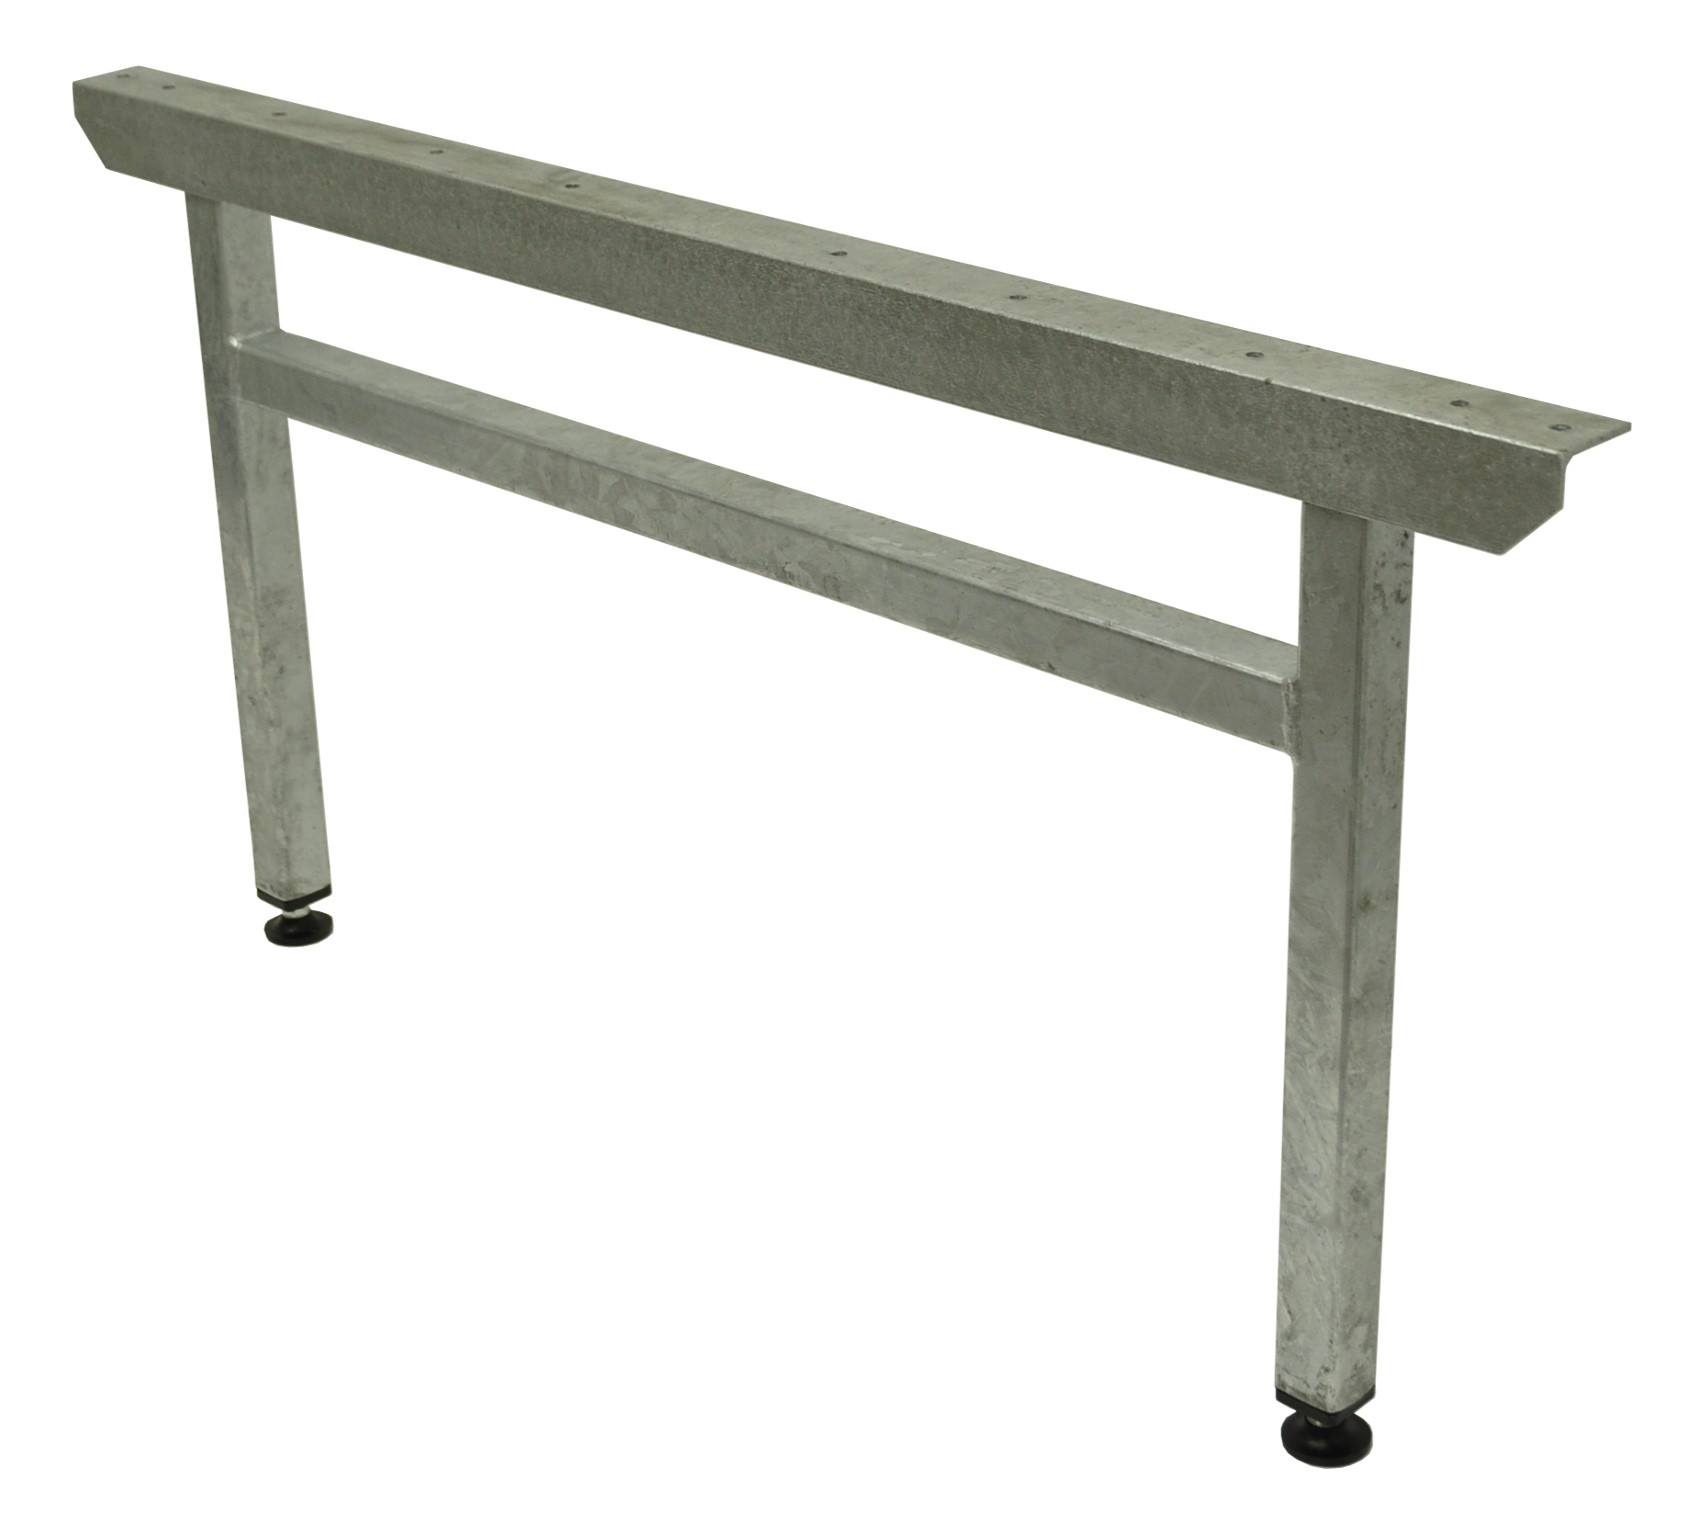 Yarra Island 900mm wide Bench Seat Brackets